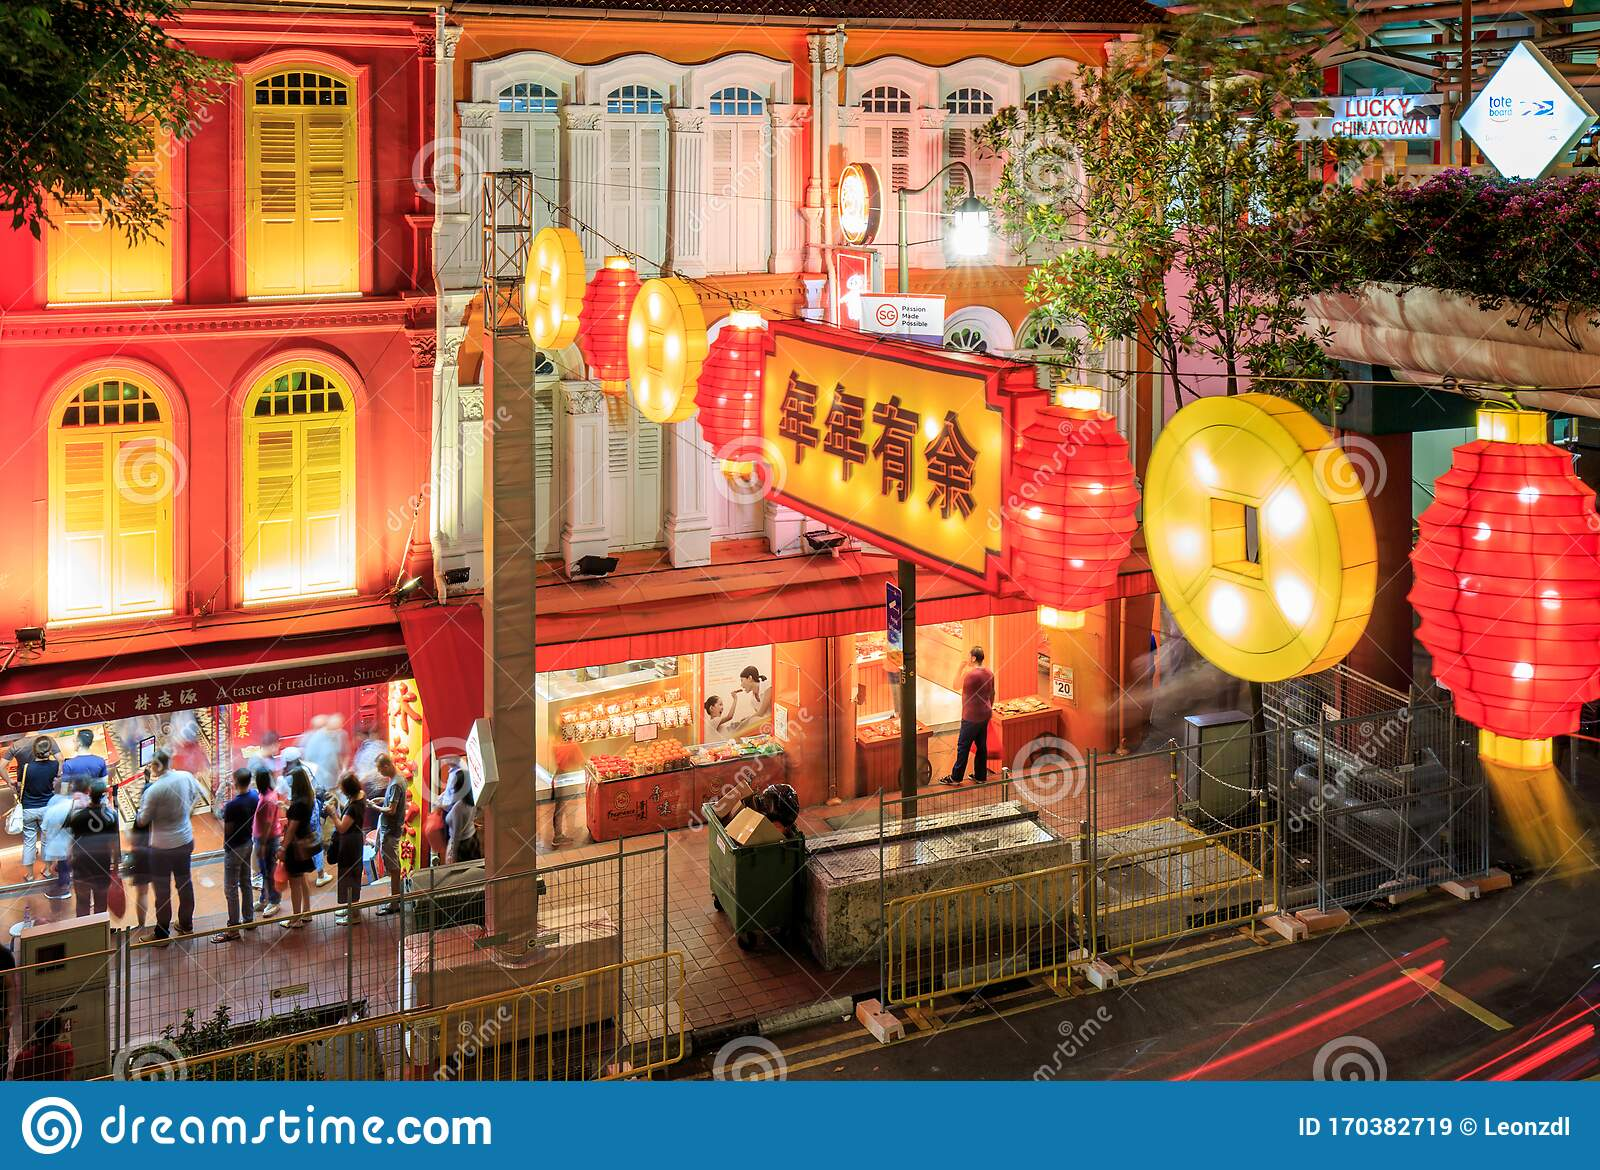 Singapore 22 Jan 2020 Singapore Chinatown Chinese New Year Street Decoration Light Night View Editorial Stock Image Image Of Festivals Chinese 170382719